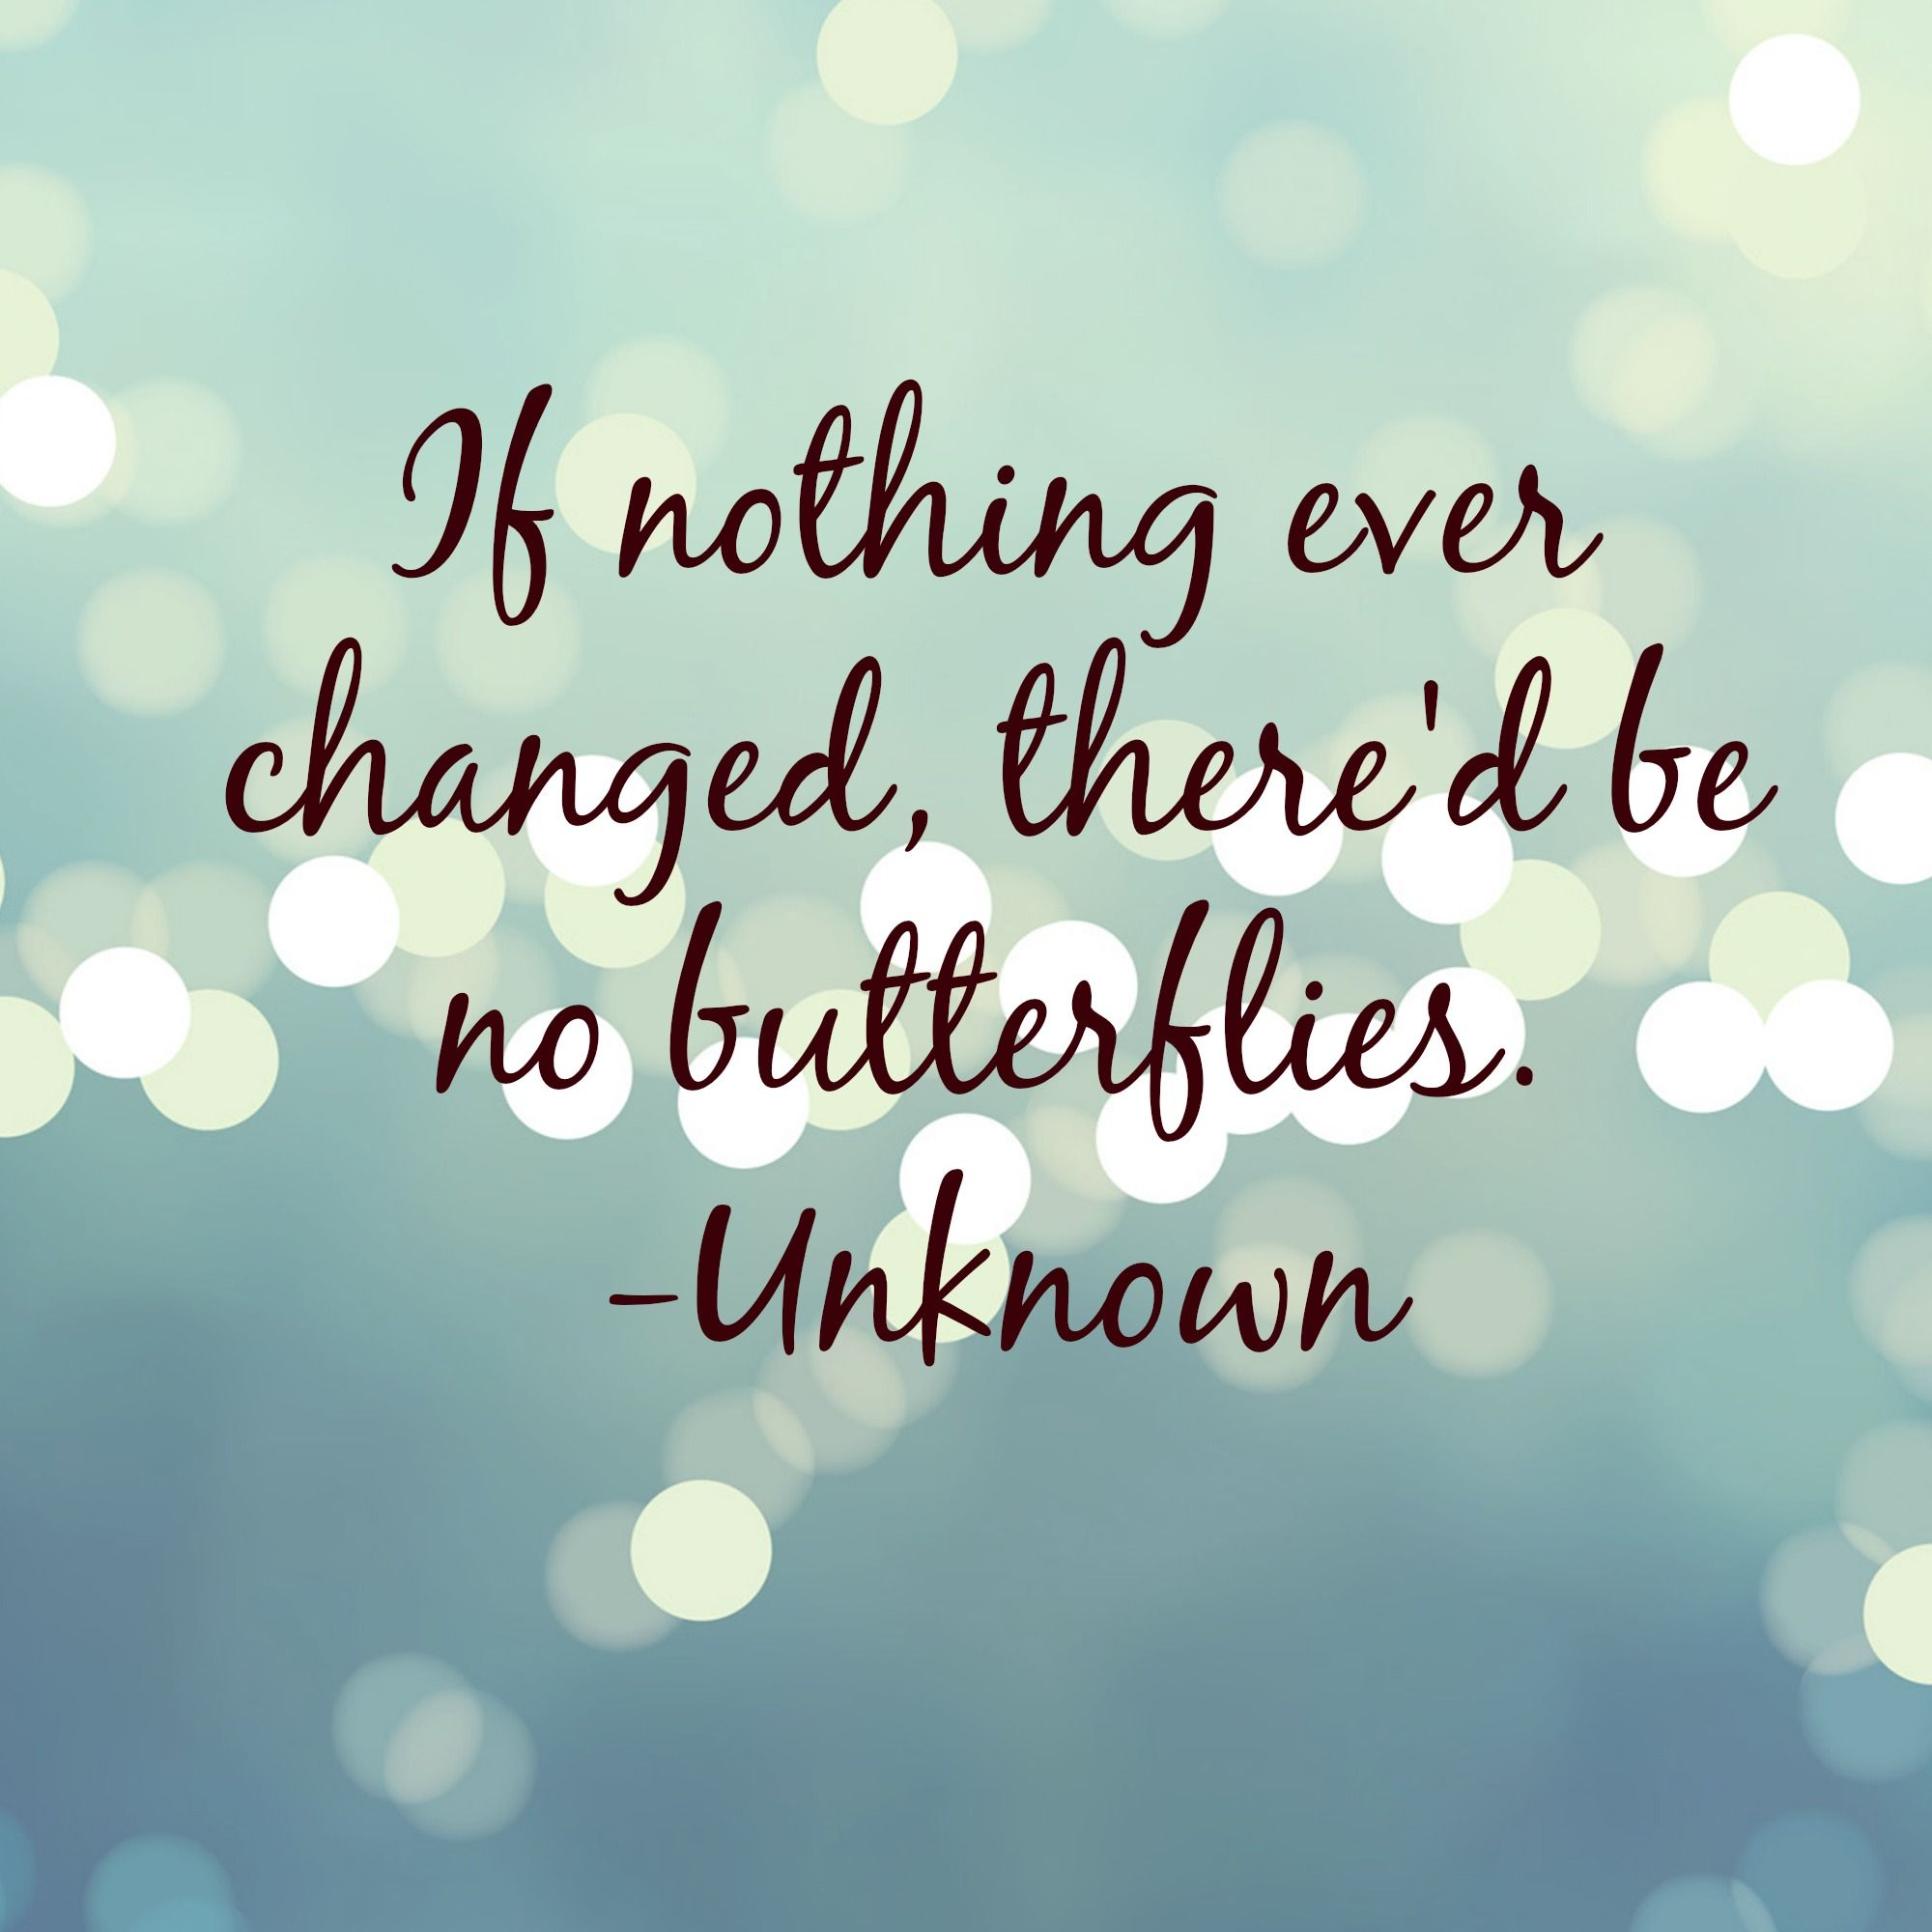 26 Inspiring Quotes About Change Change quotes, Words